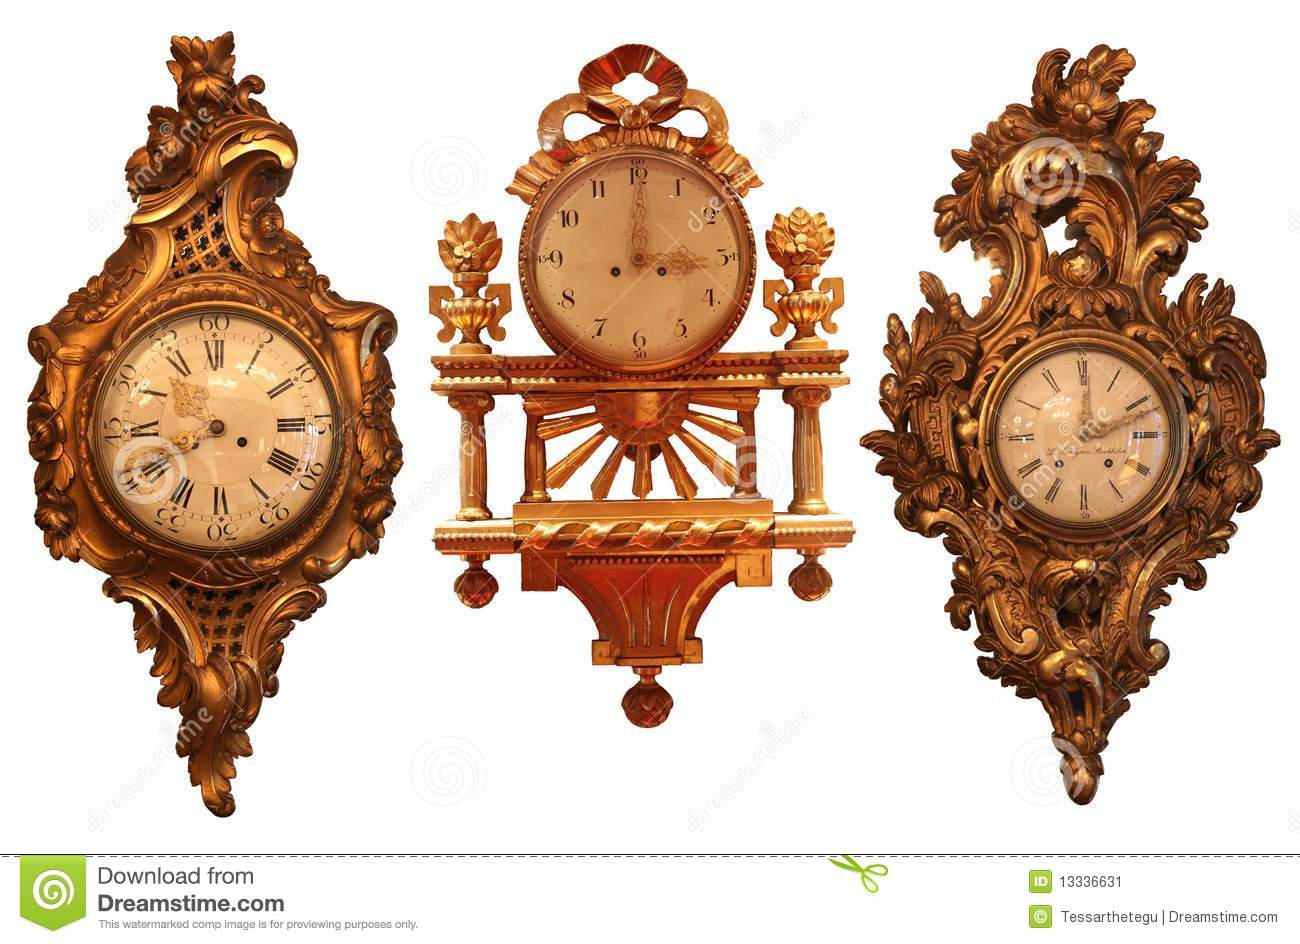 Ancient wall clocks with wooden structure stock image for Reloj de pared antiguo